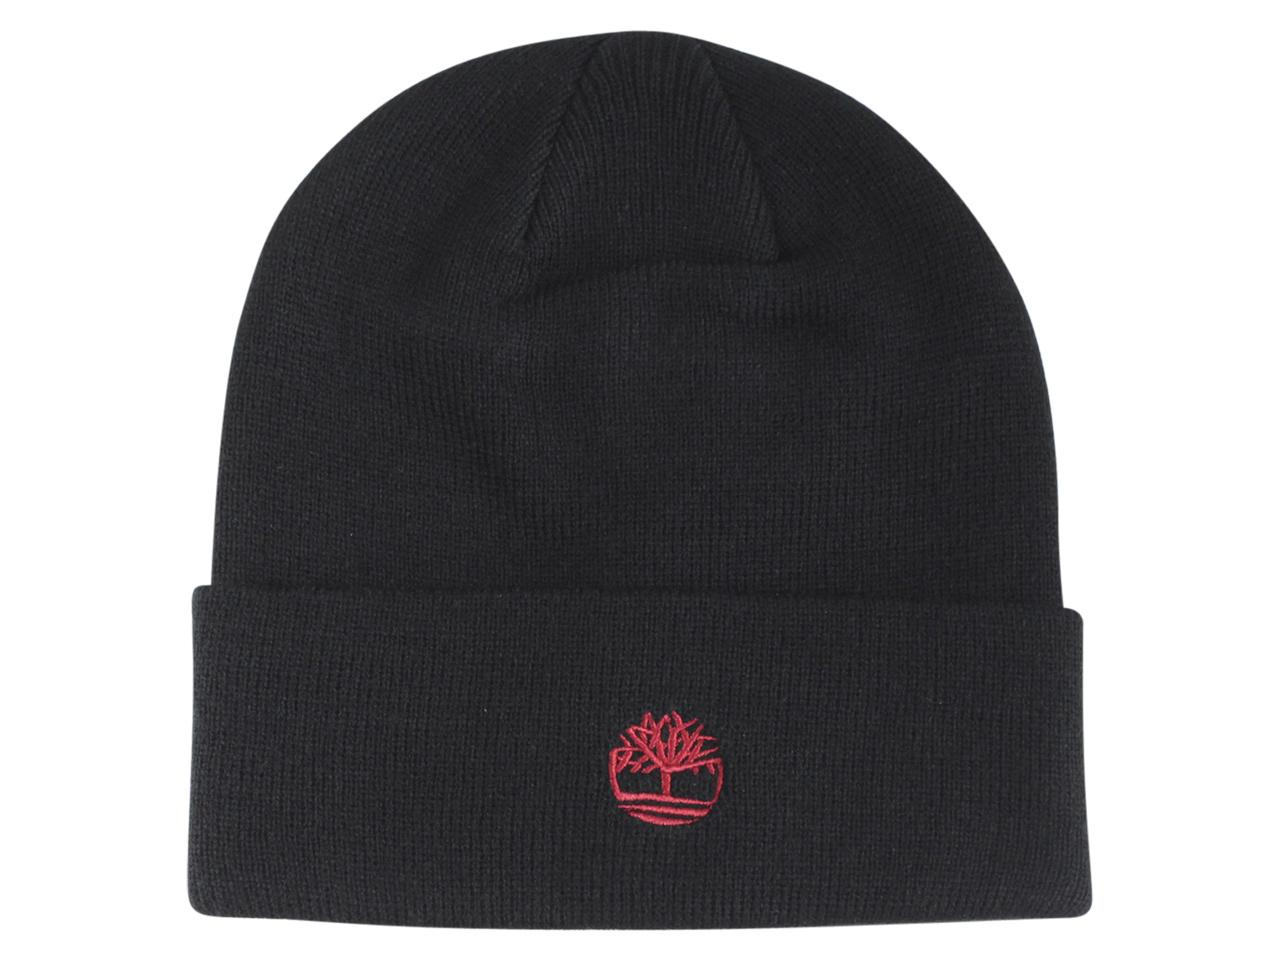 Image of - Black/Red - One Size Fits Most